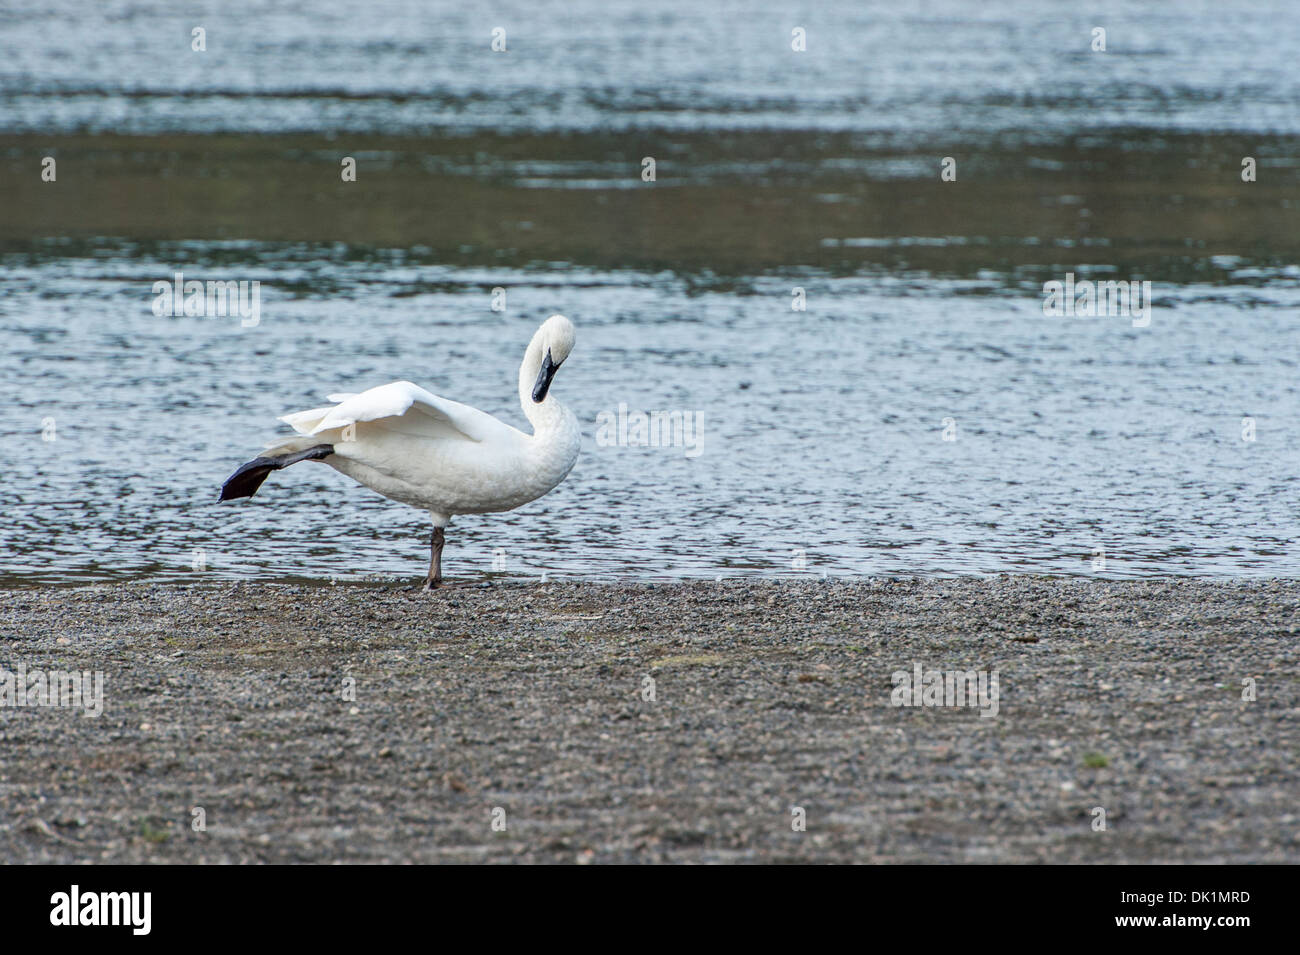 A swan gracefully posing in a way reminiscing of a ballet dancer. - Stock Image